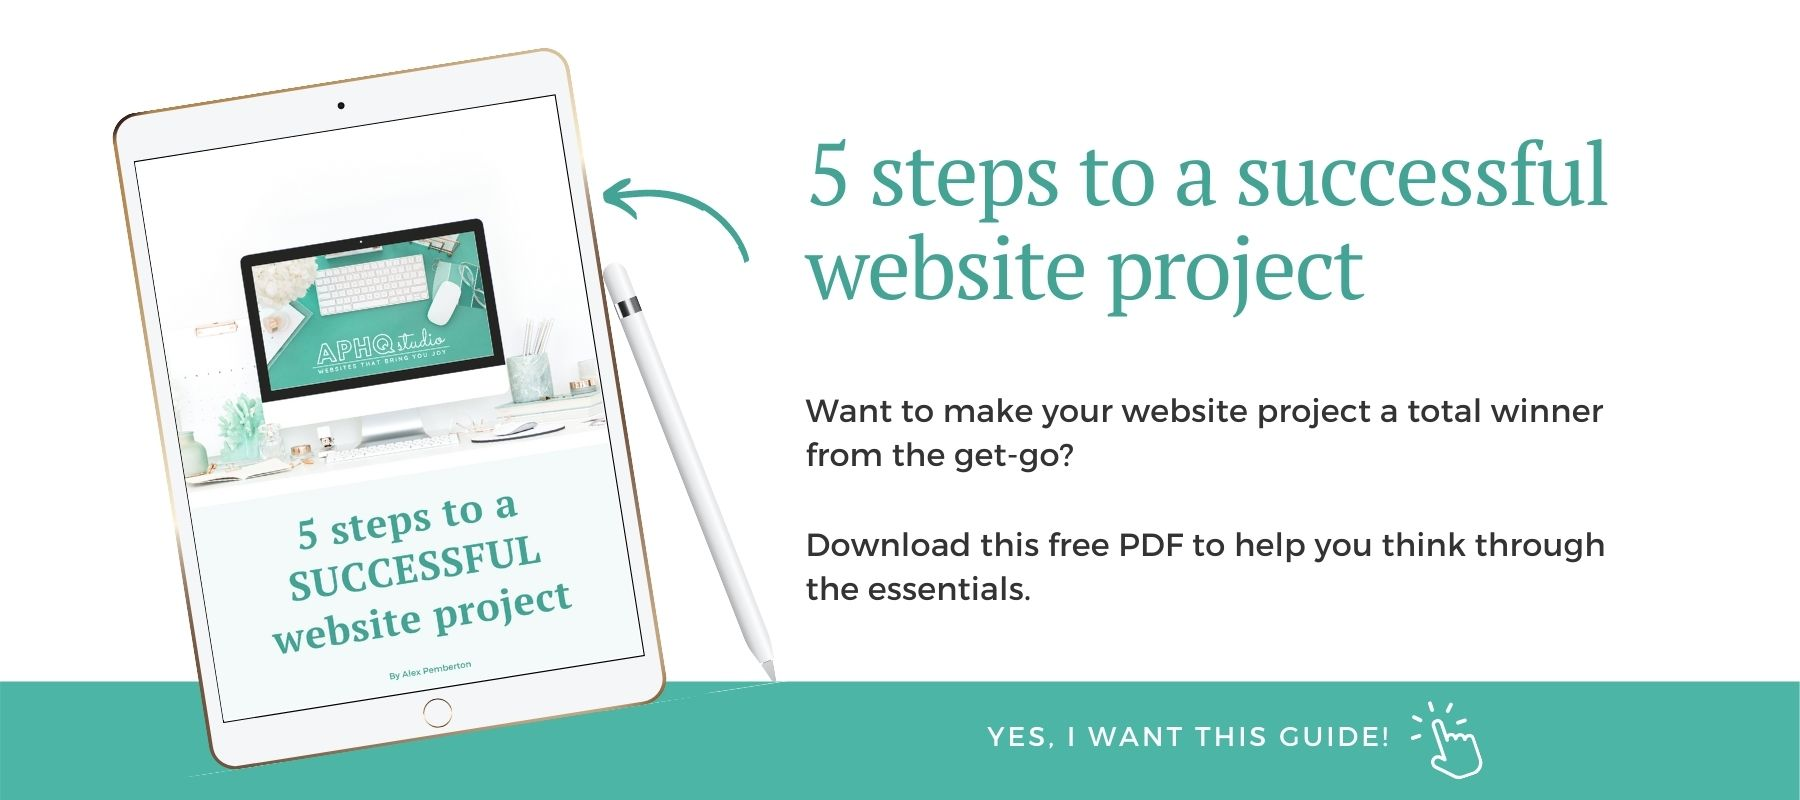 5 steps to a successful website project - click to request download